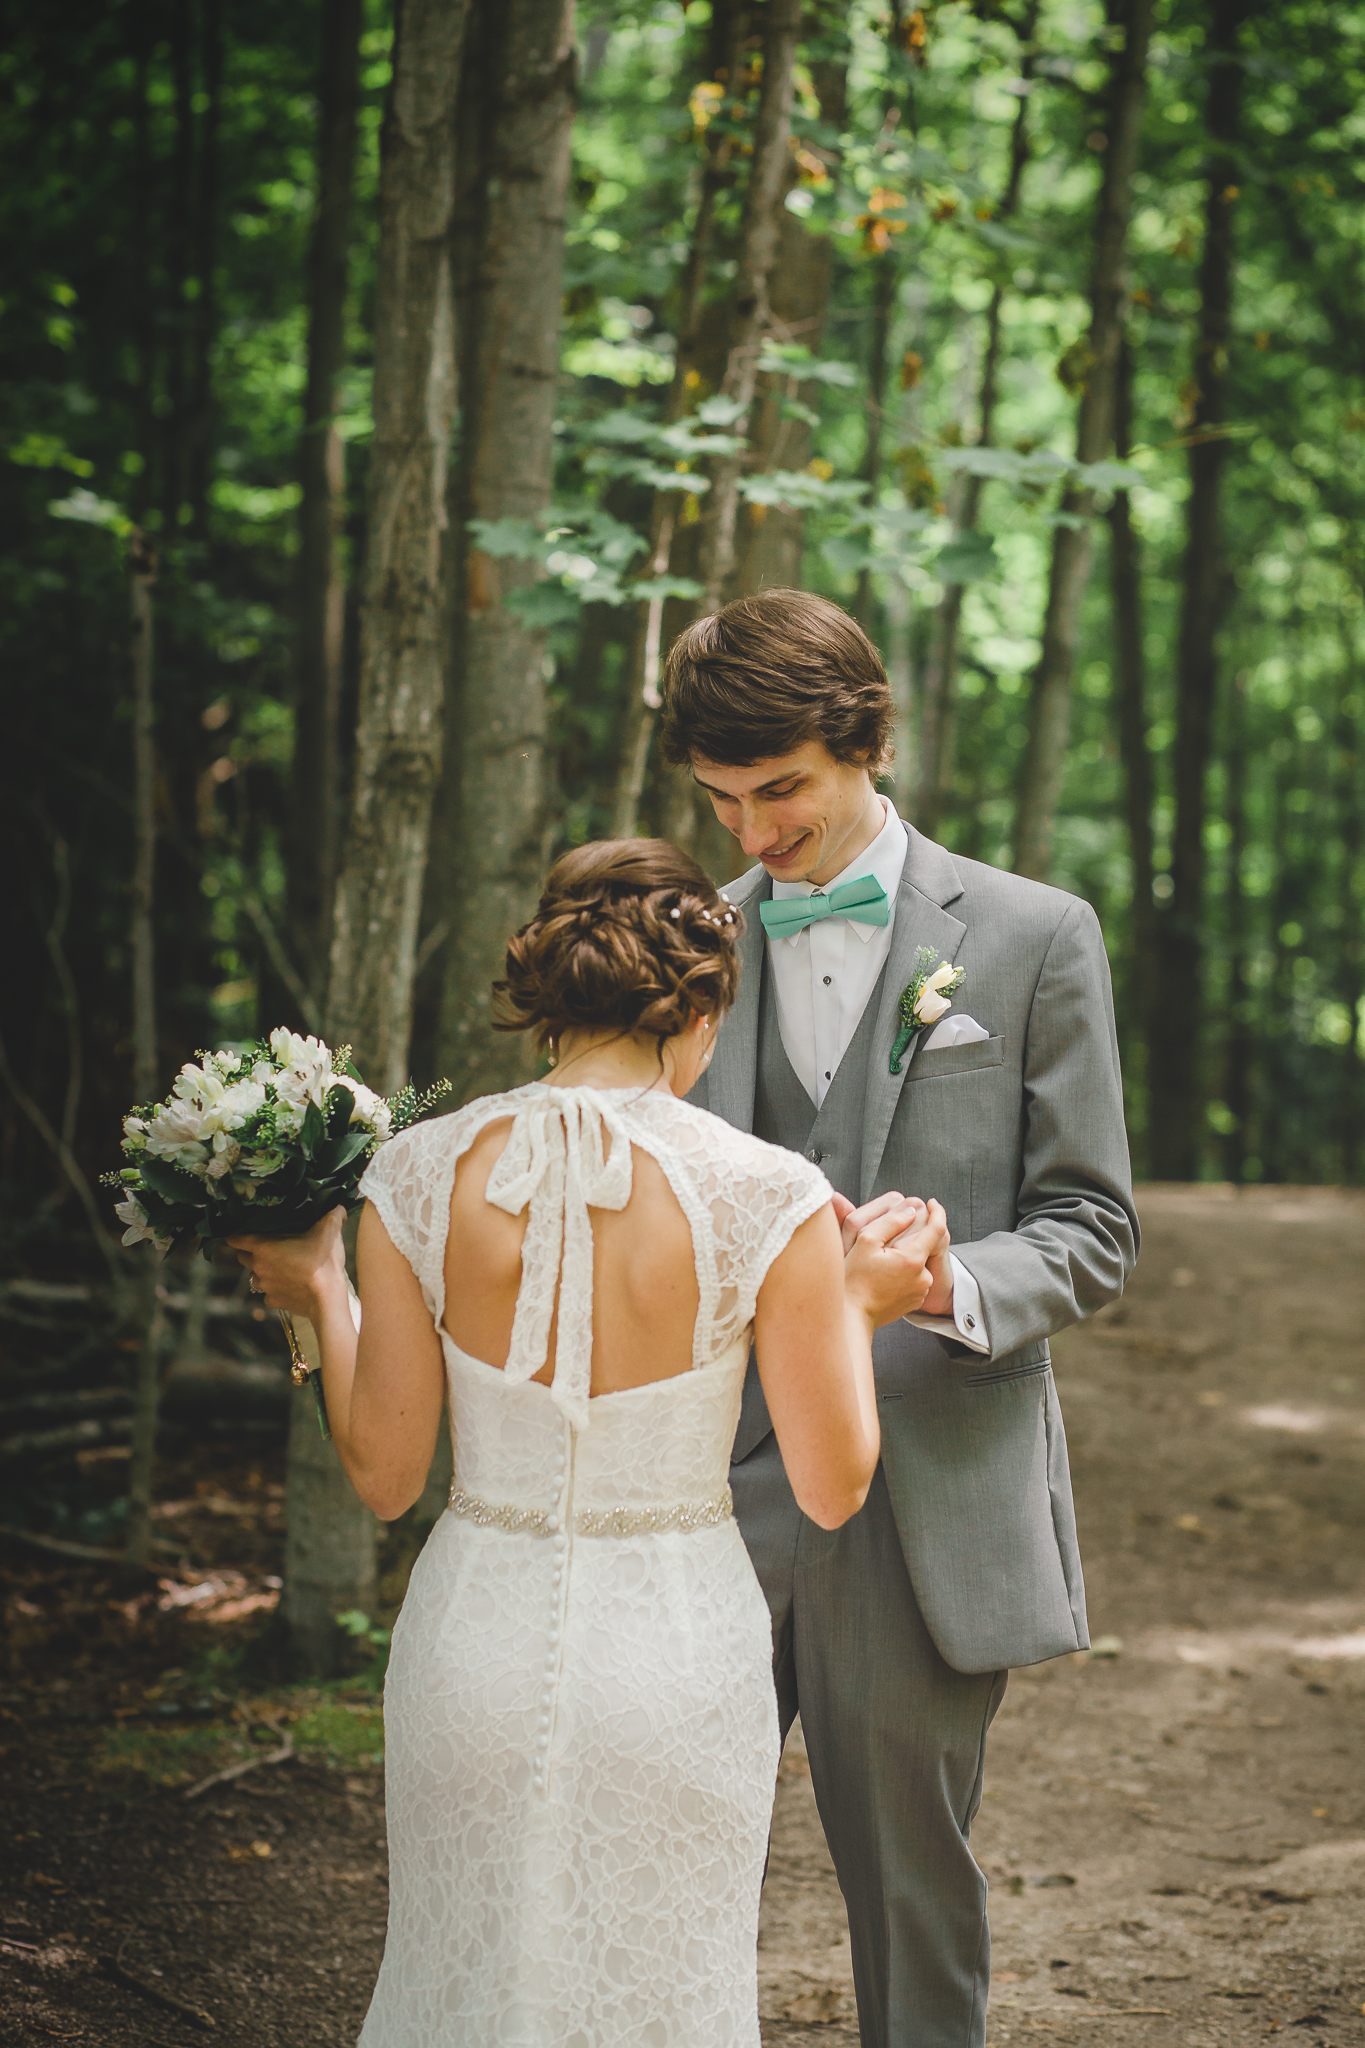 First Look- Amy D Photography- Wedding Photography- Barrie Wedding Photographer - Barrie Wedding Photography- Wedding First Look- First Look Forest-23.jpg